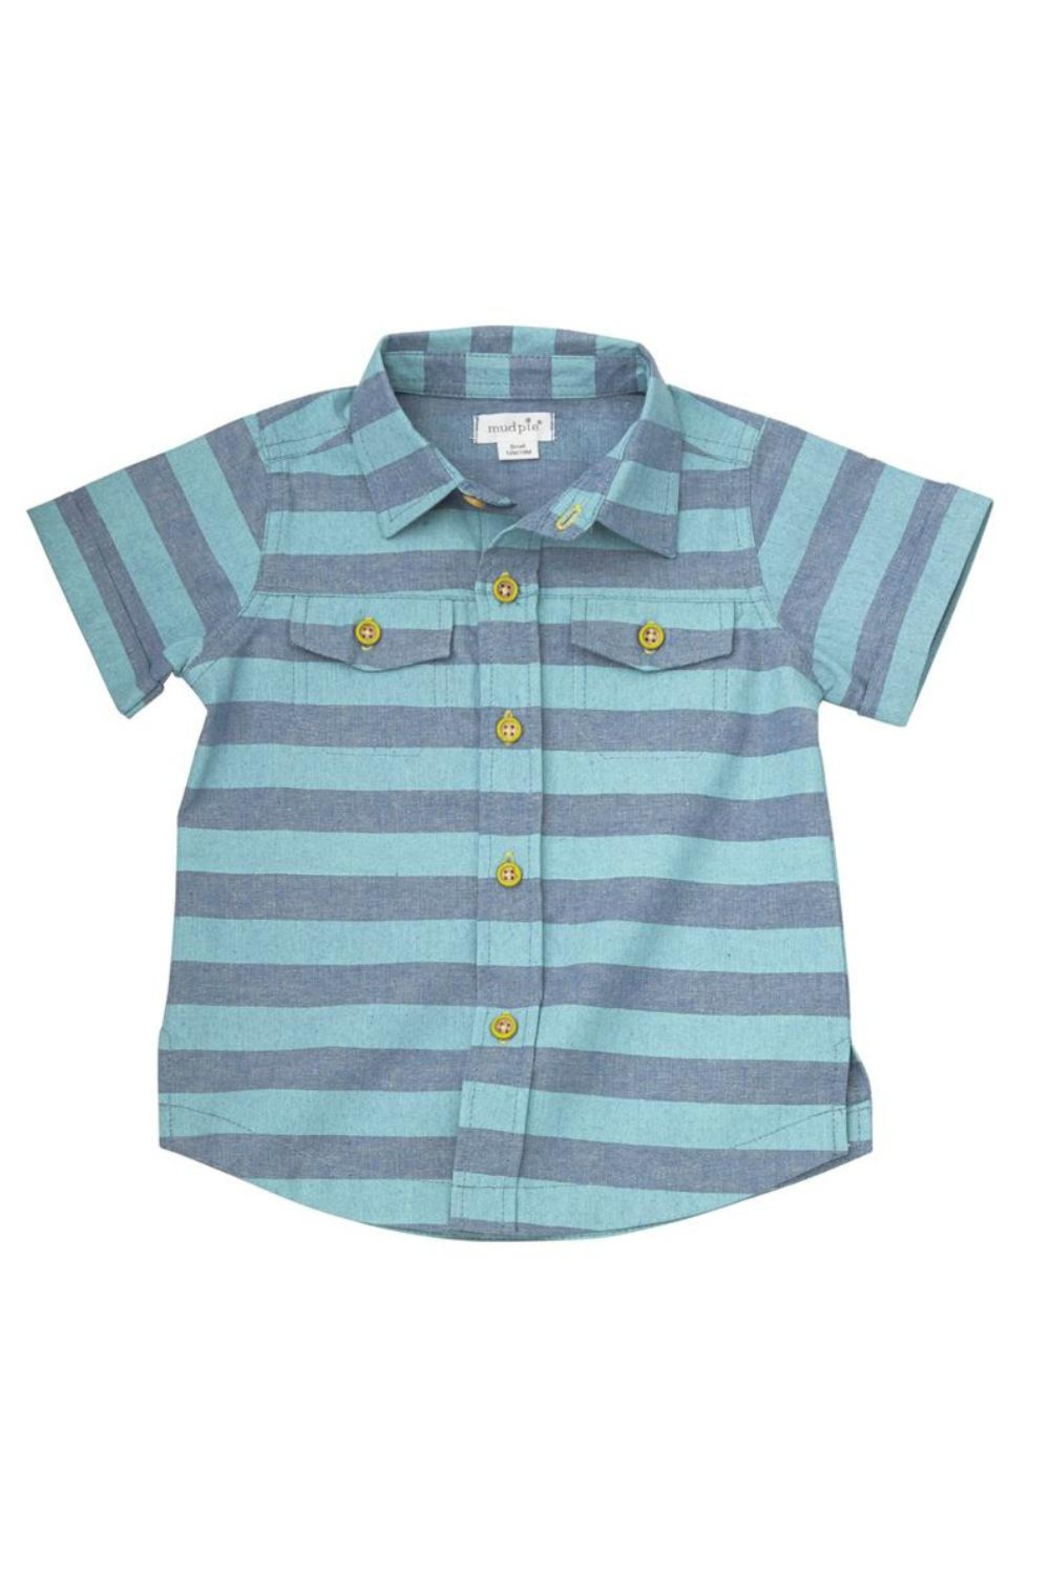 Mud Pie Striped Resort Shirt - Front Cropped Image